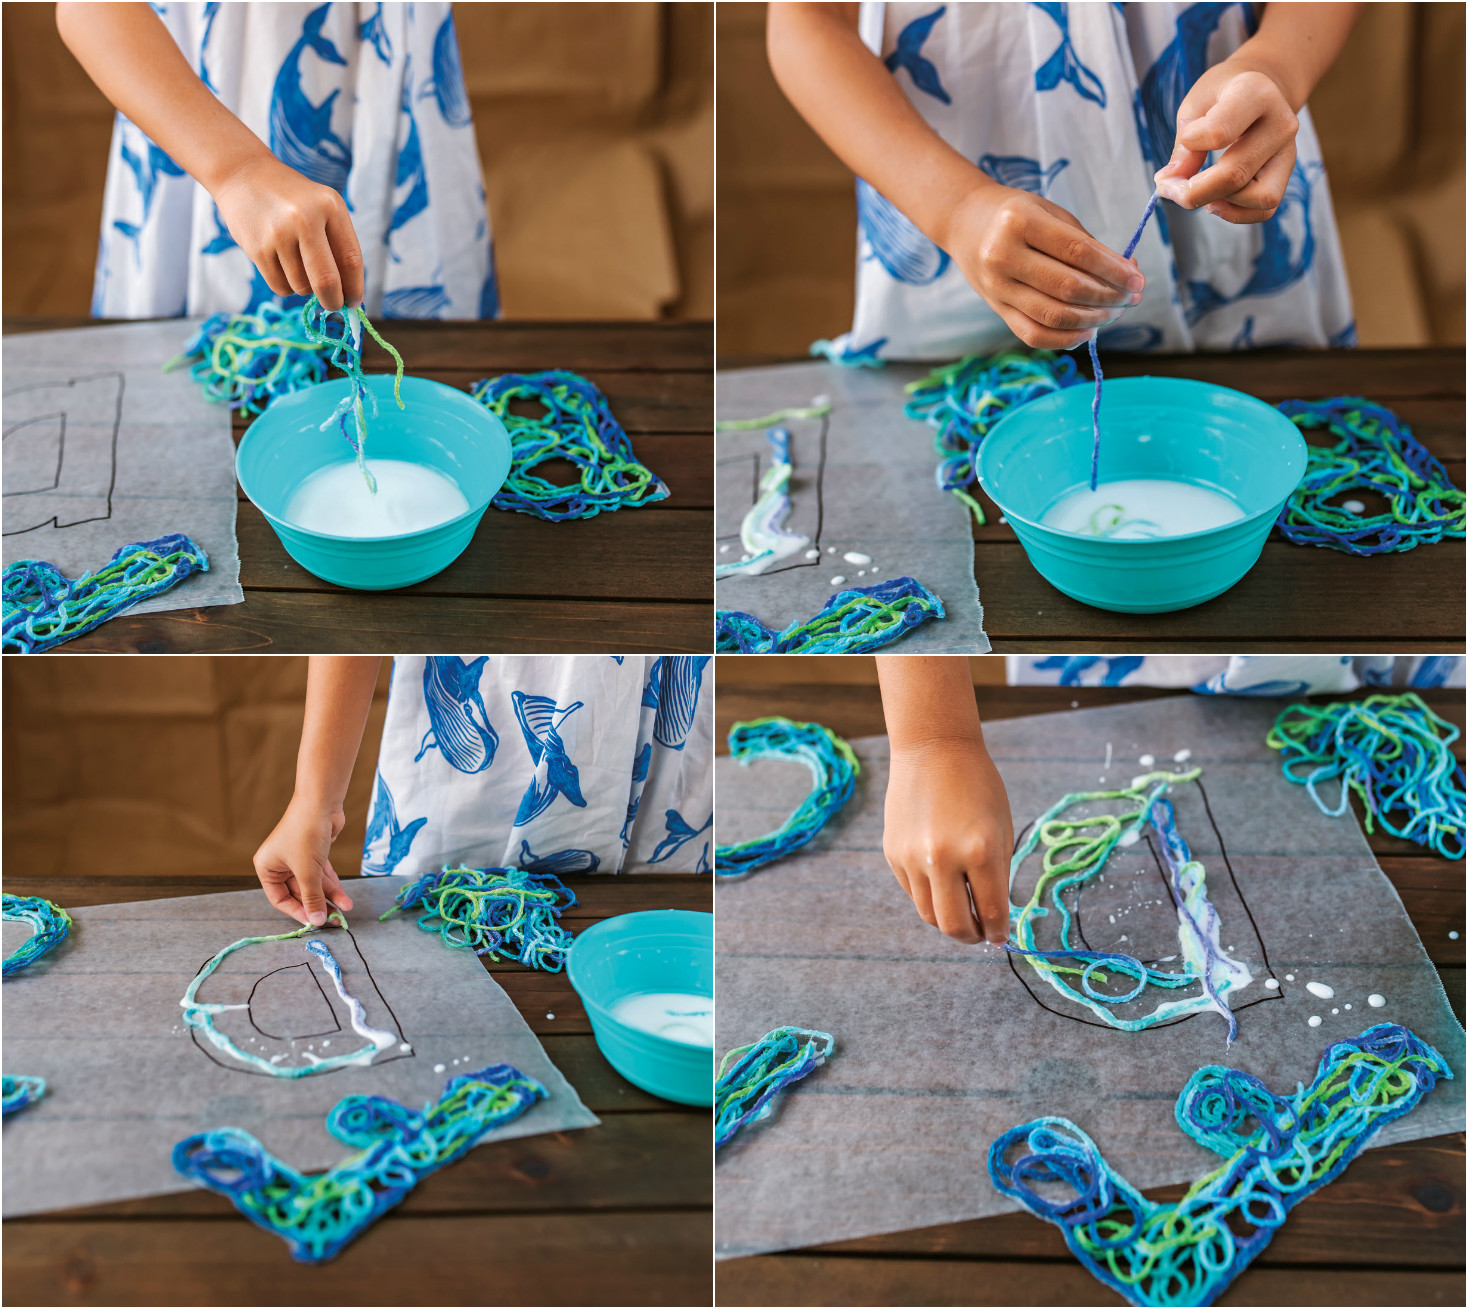 Have children dip yarn pieces into glue container